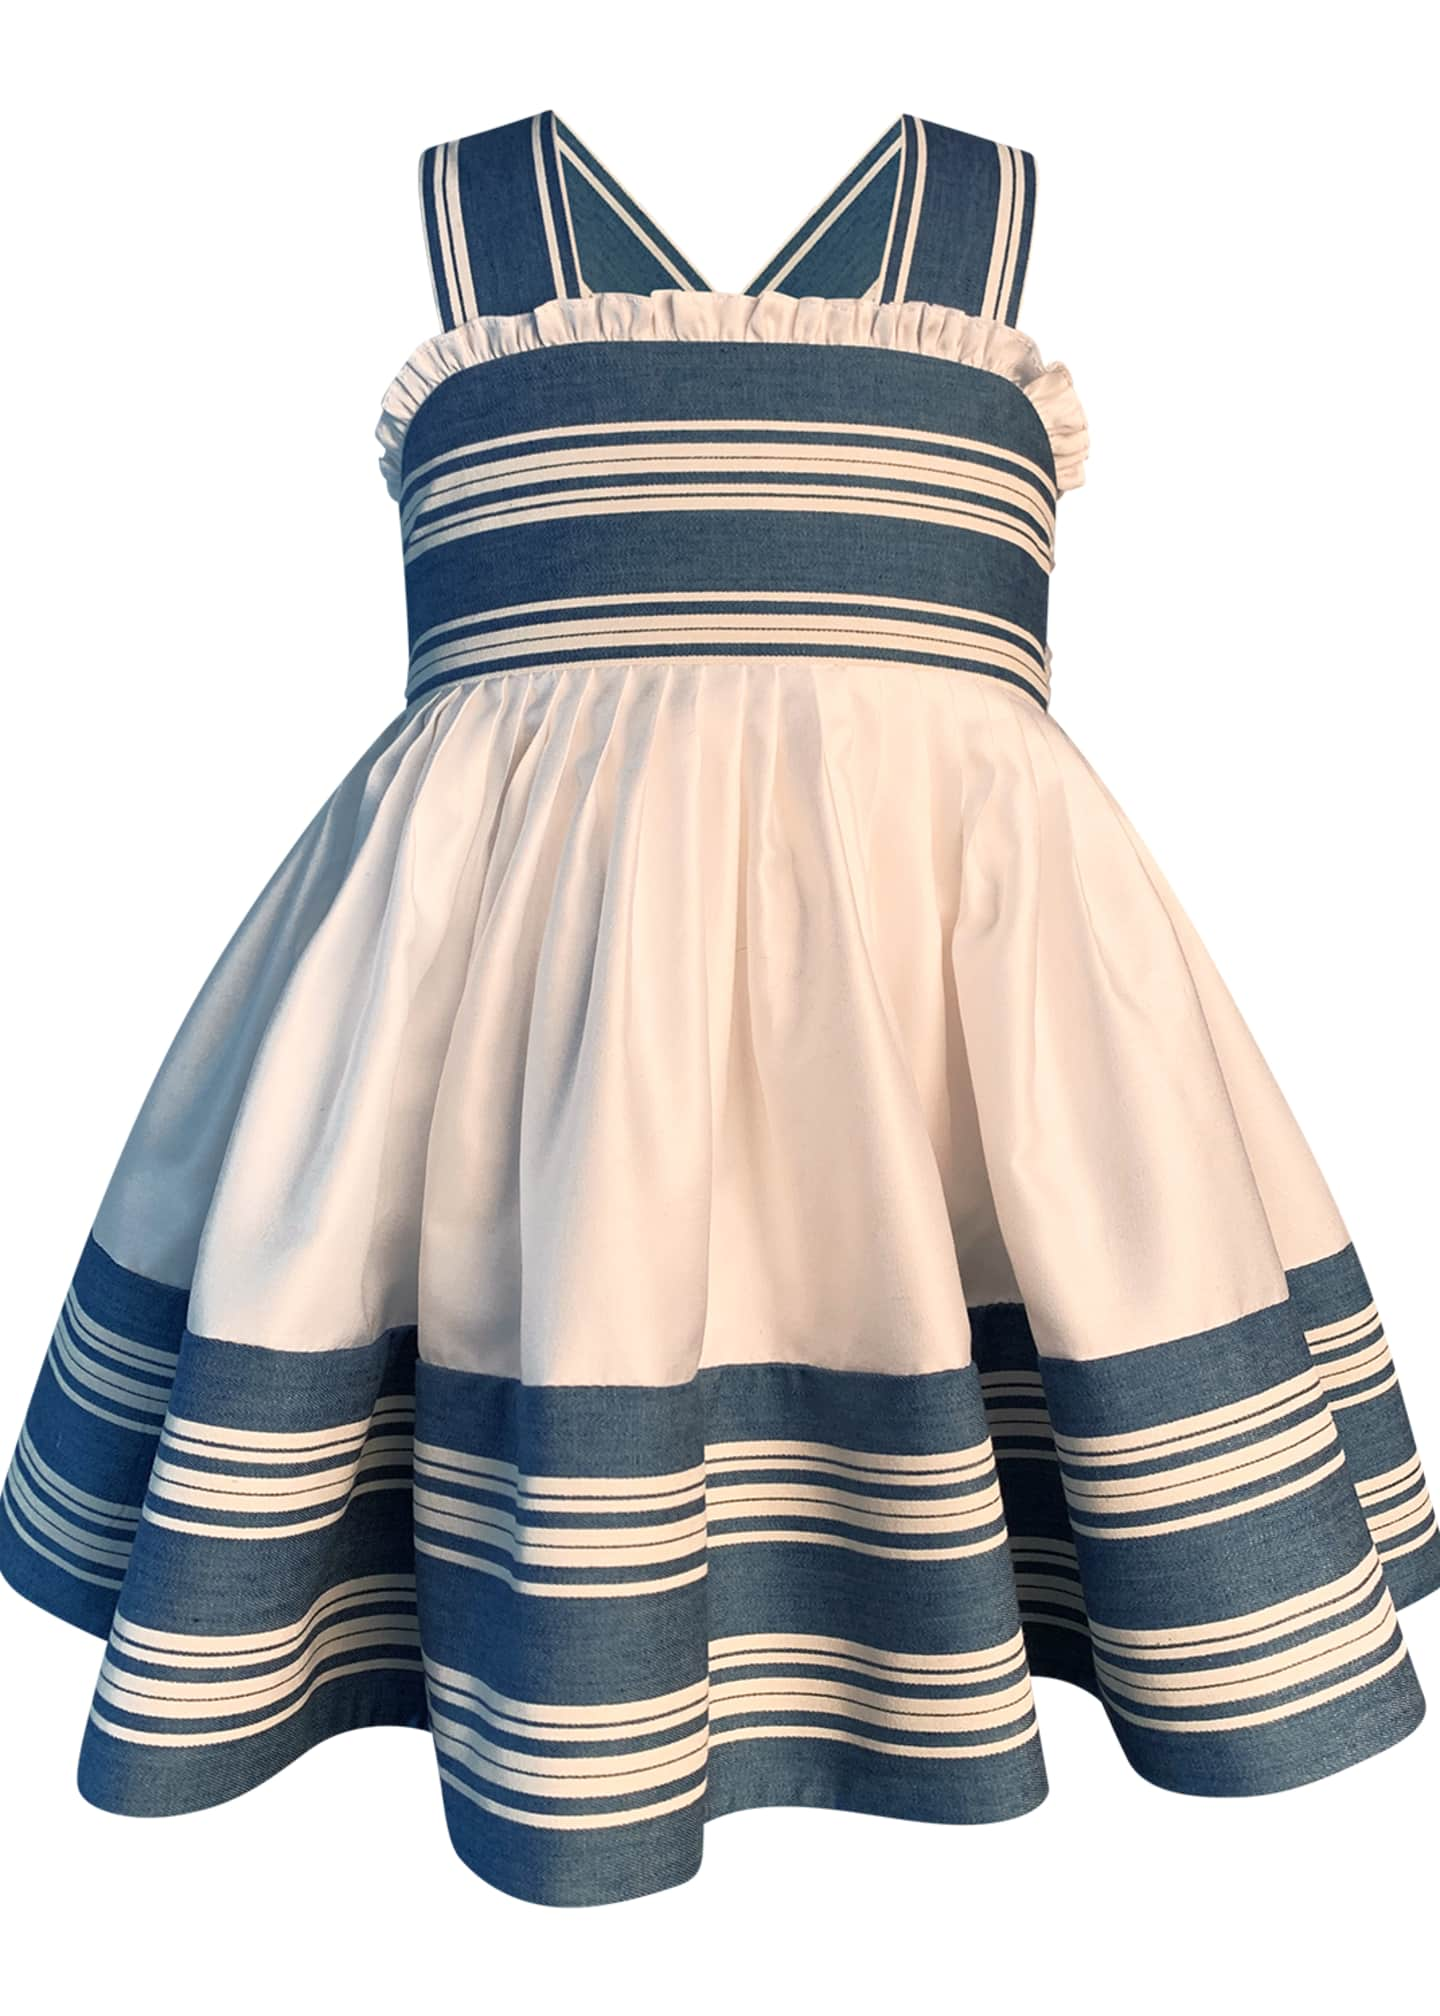 Image 1 of 2: Girl's Striped Sun Dress, Size 7-10